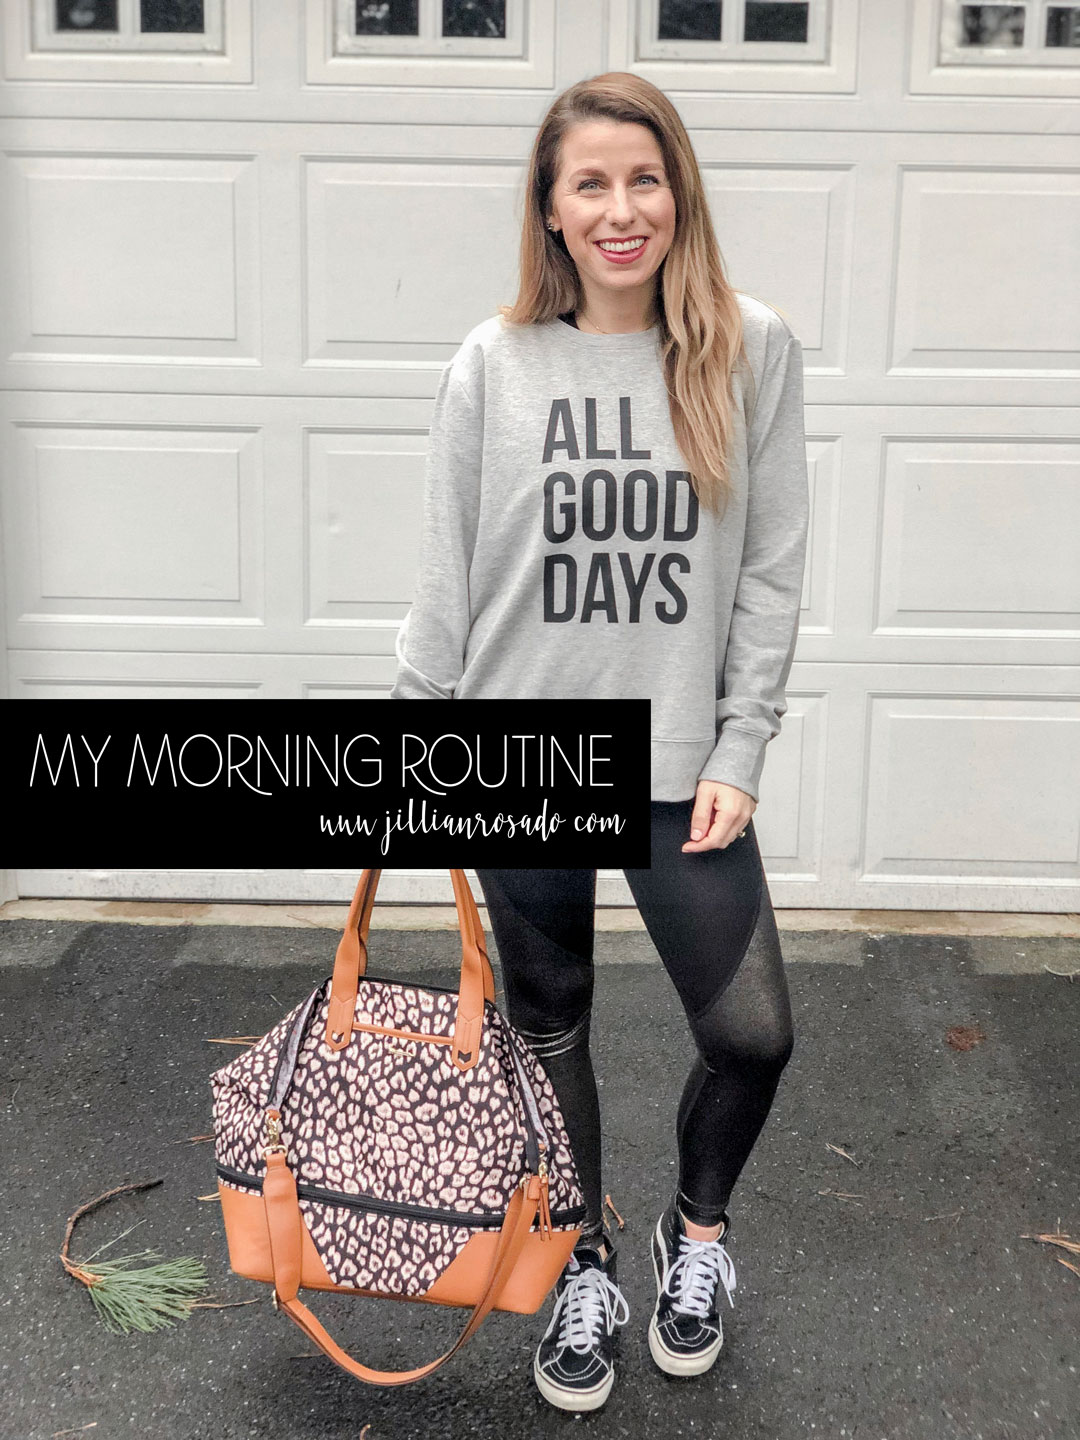 Morning Routine Stella & Dot Jillian Rosado